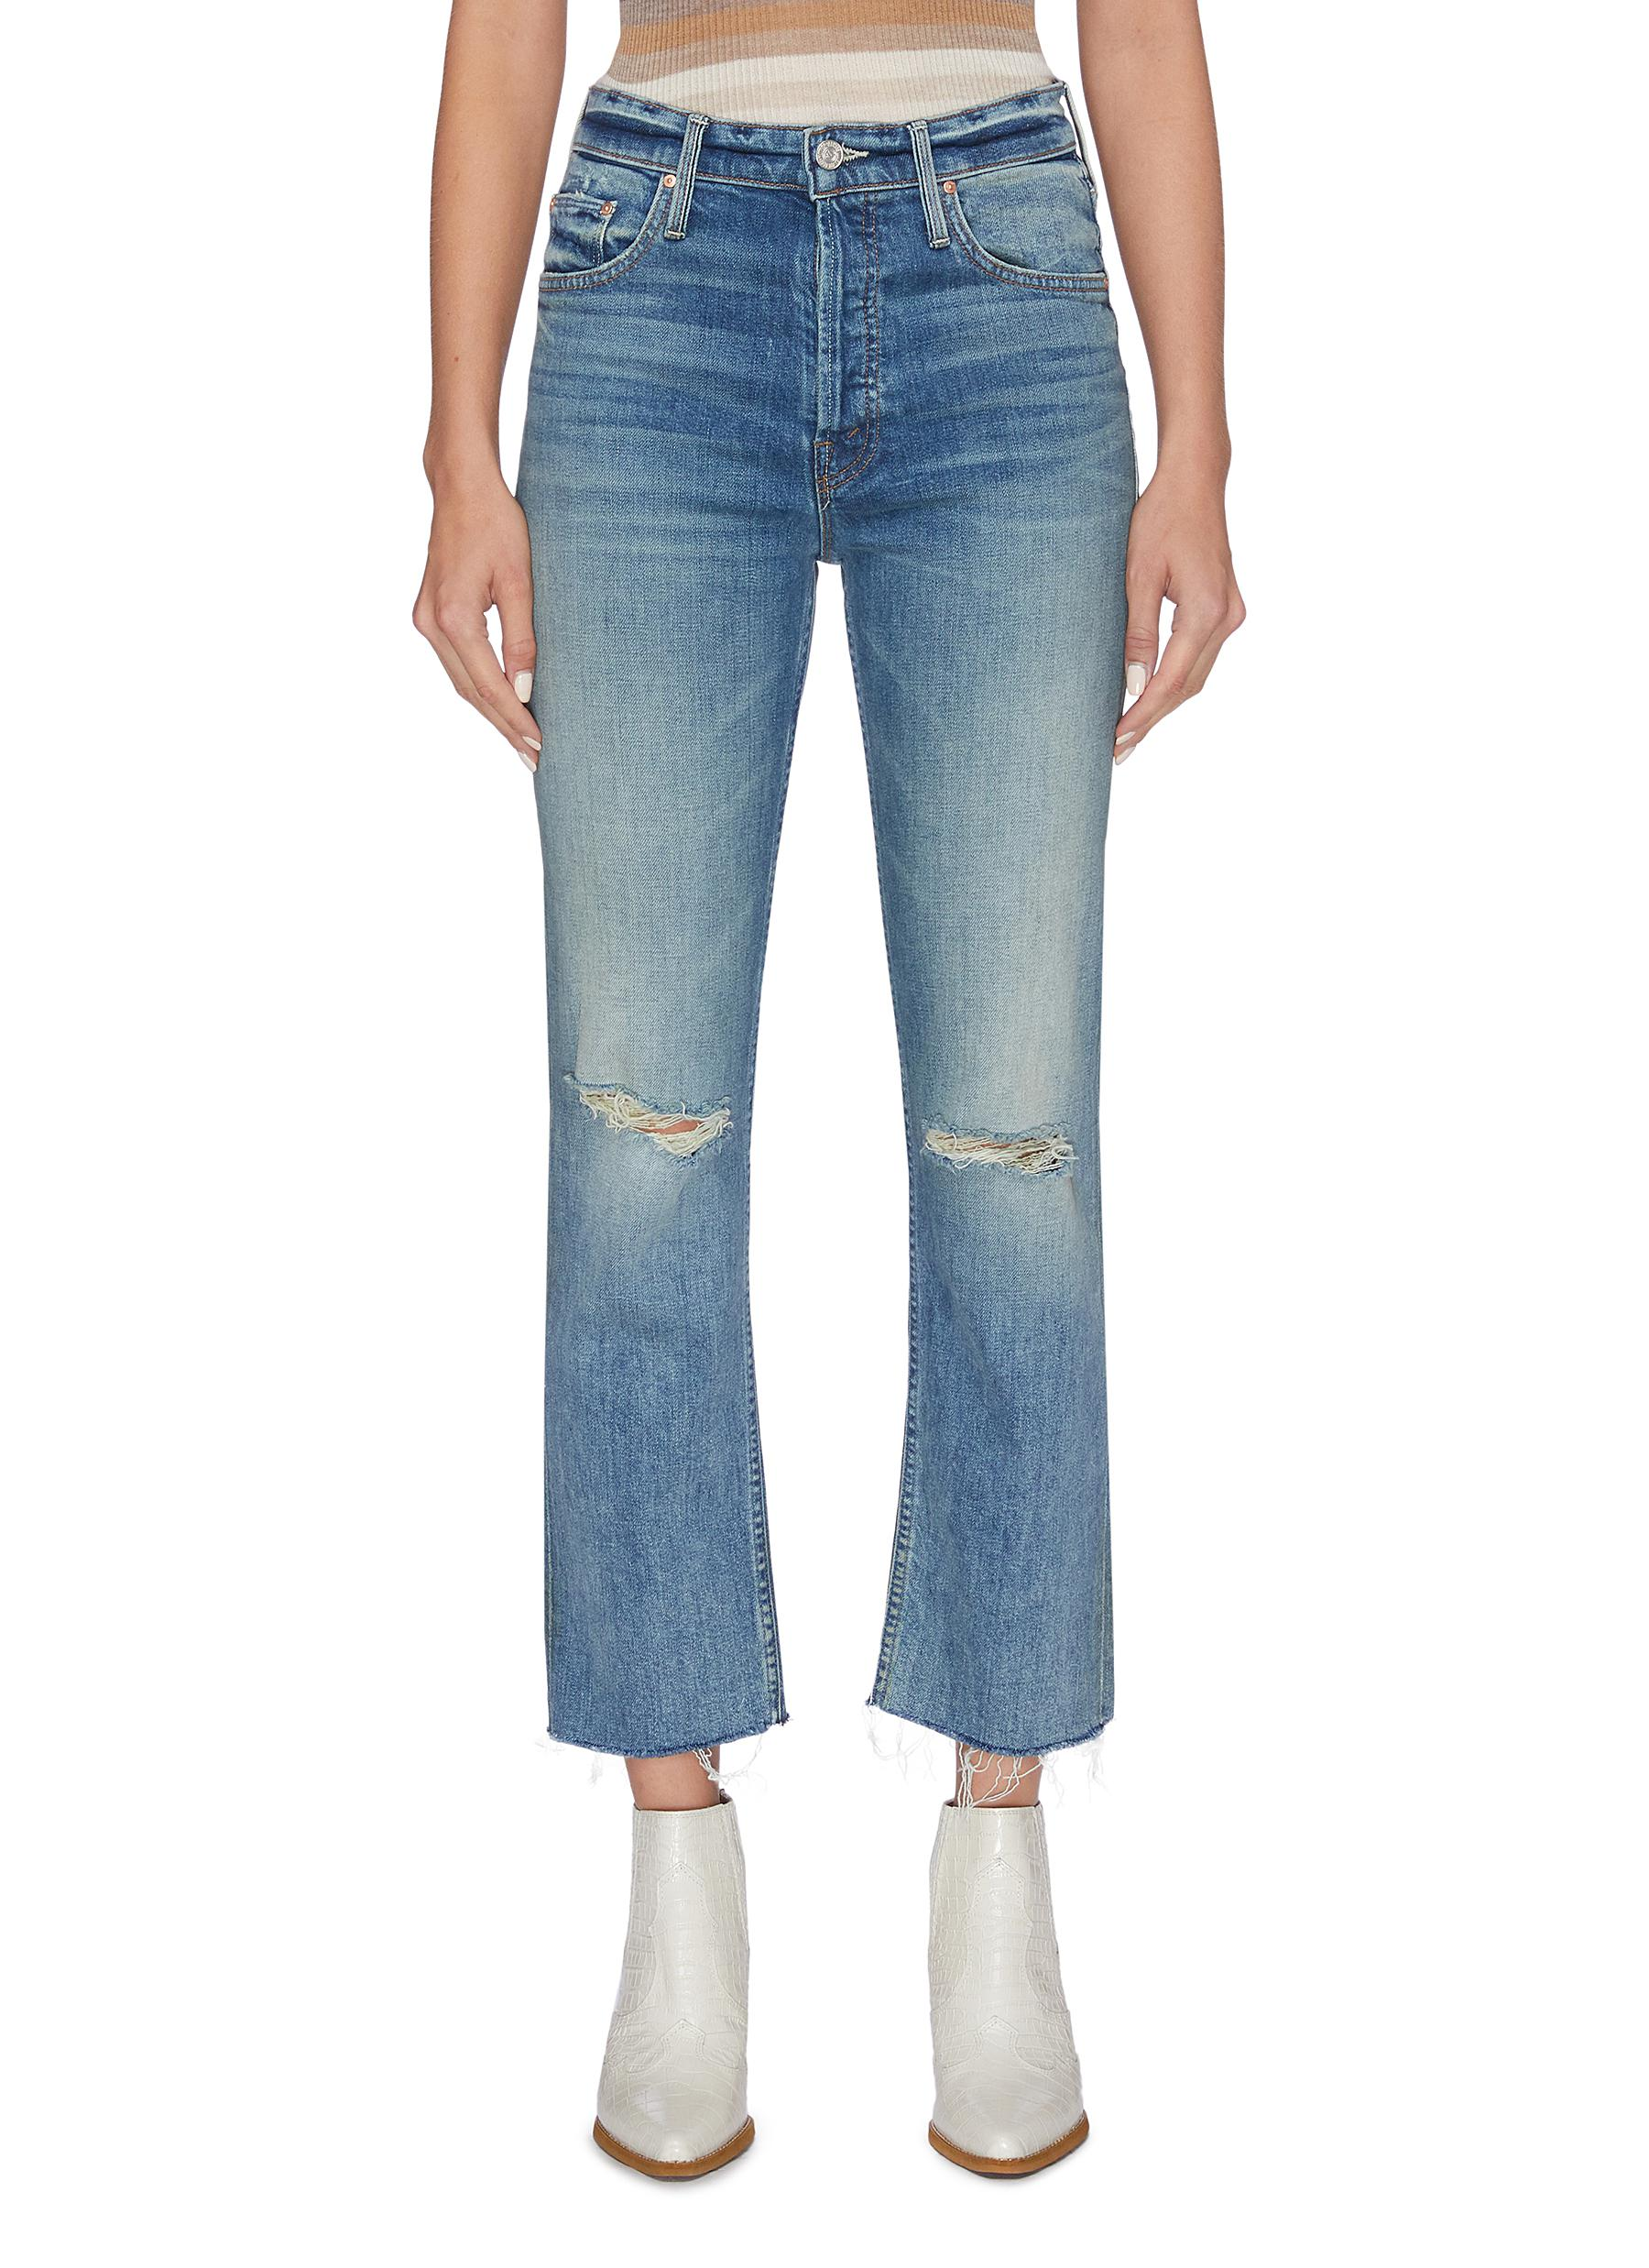 The Tomcat Ankle Fray ripped knee cropped jeans by Mother